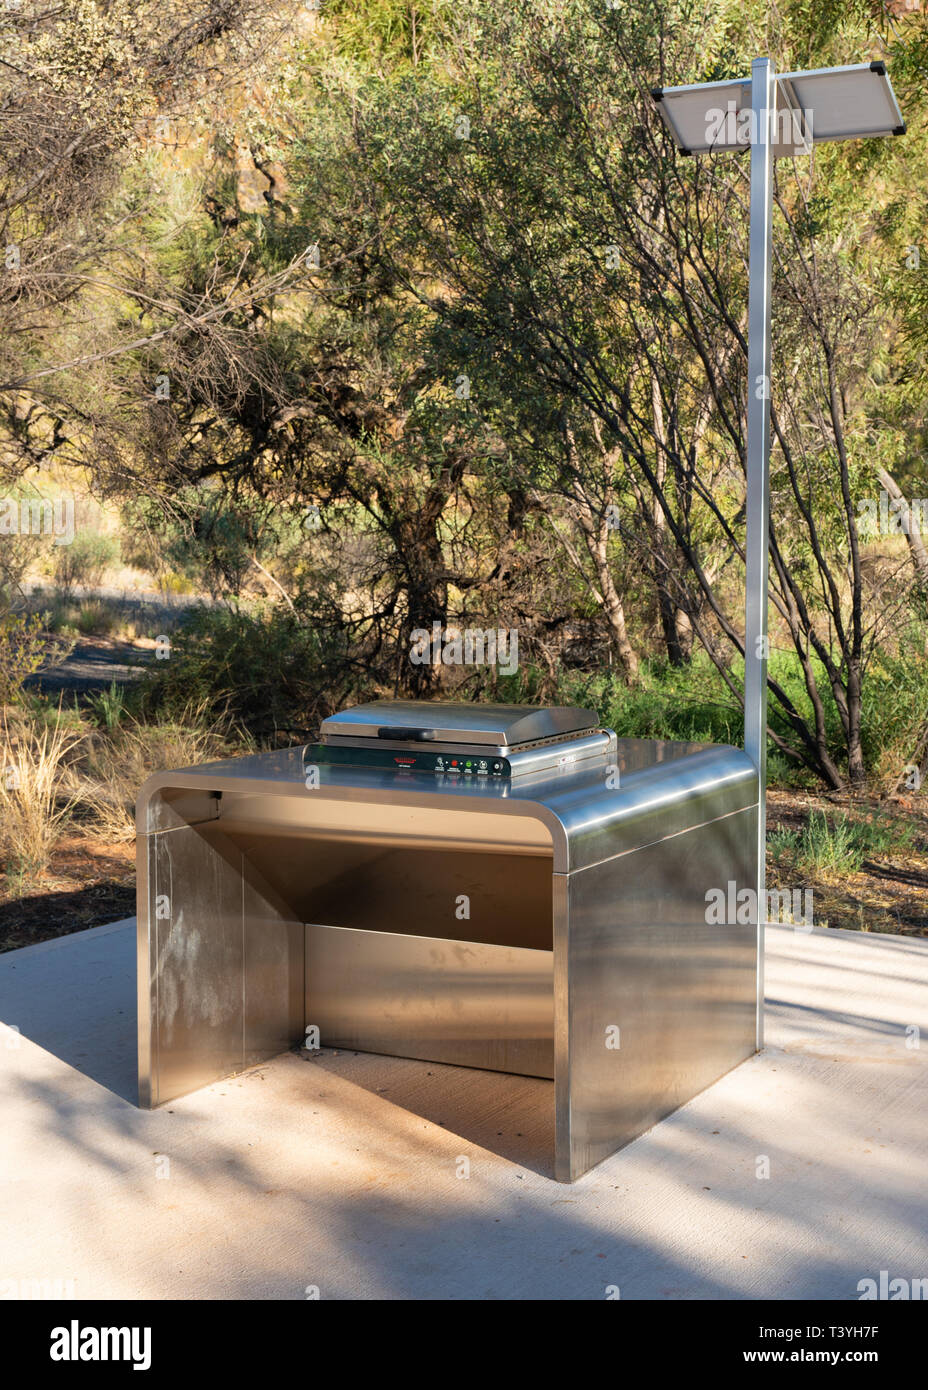 Free public solar electric BBQ in the West MacDonnell Ranges in NT outback Australia - Stock Image